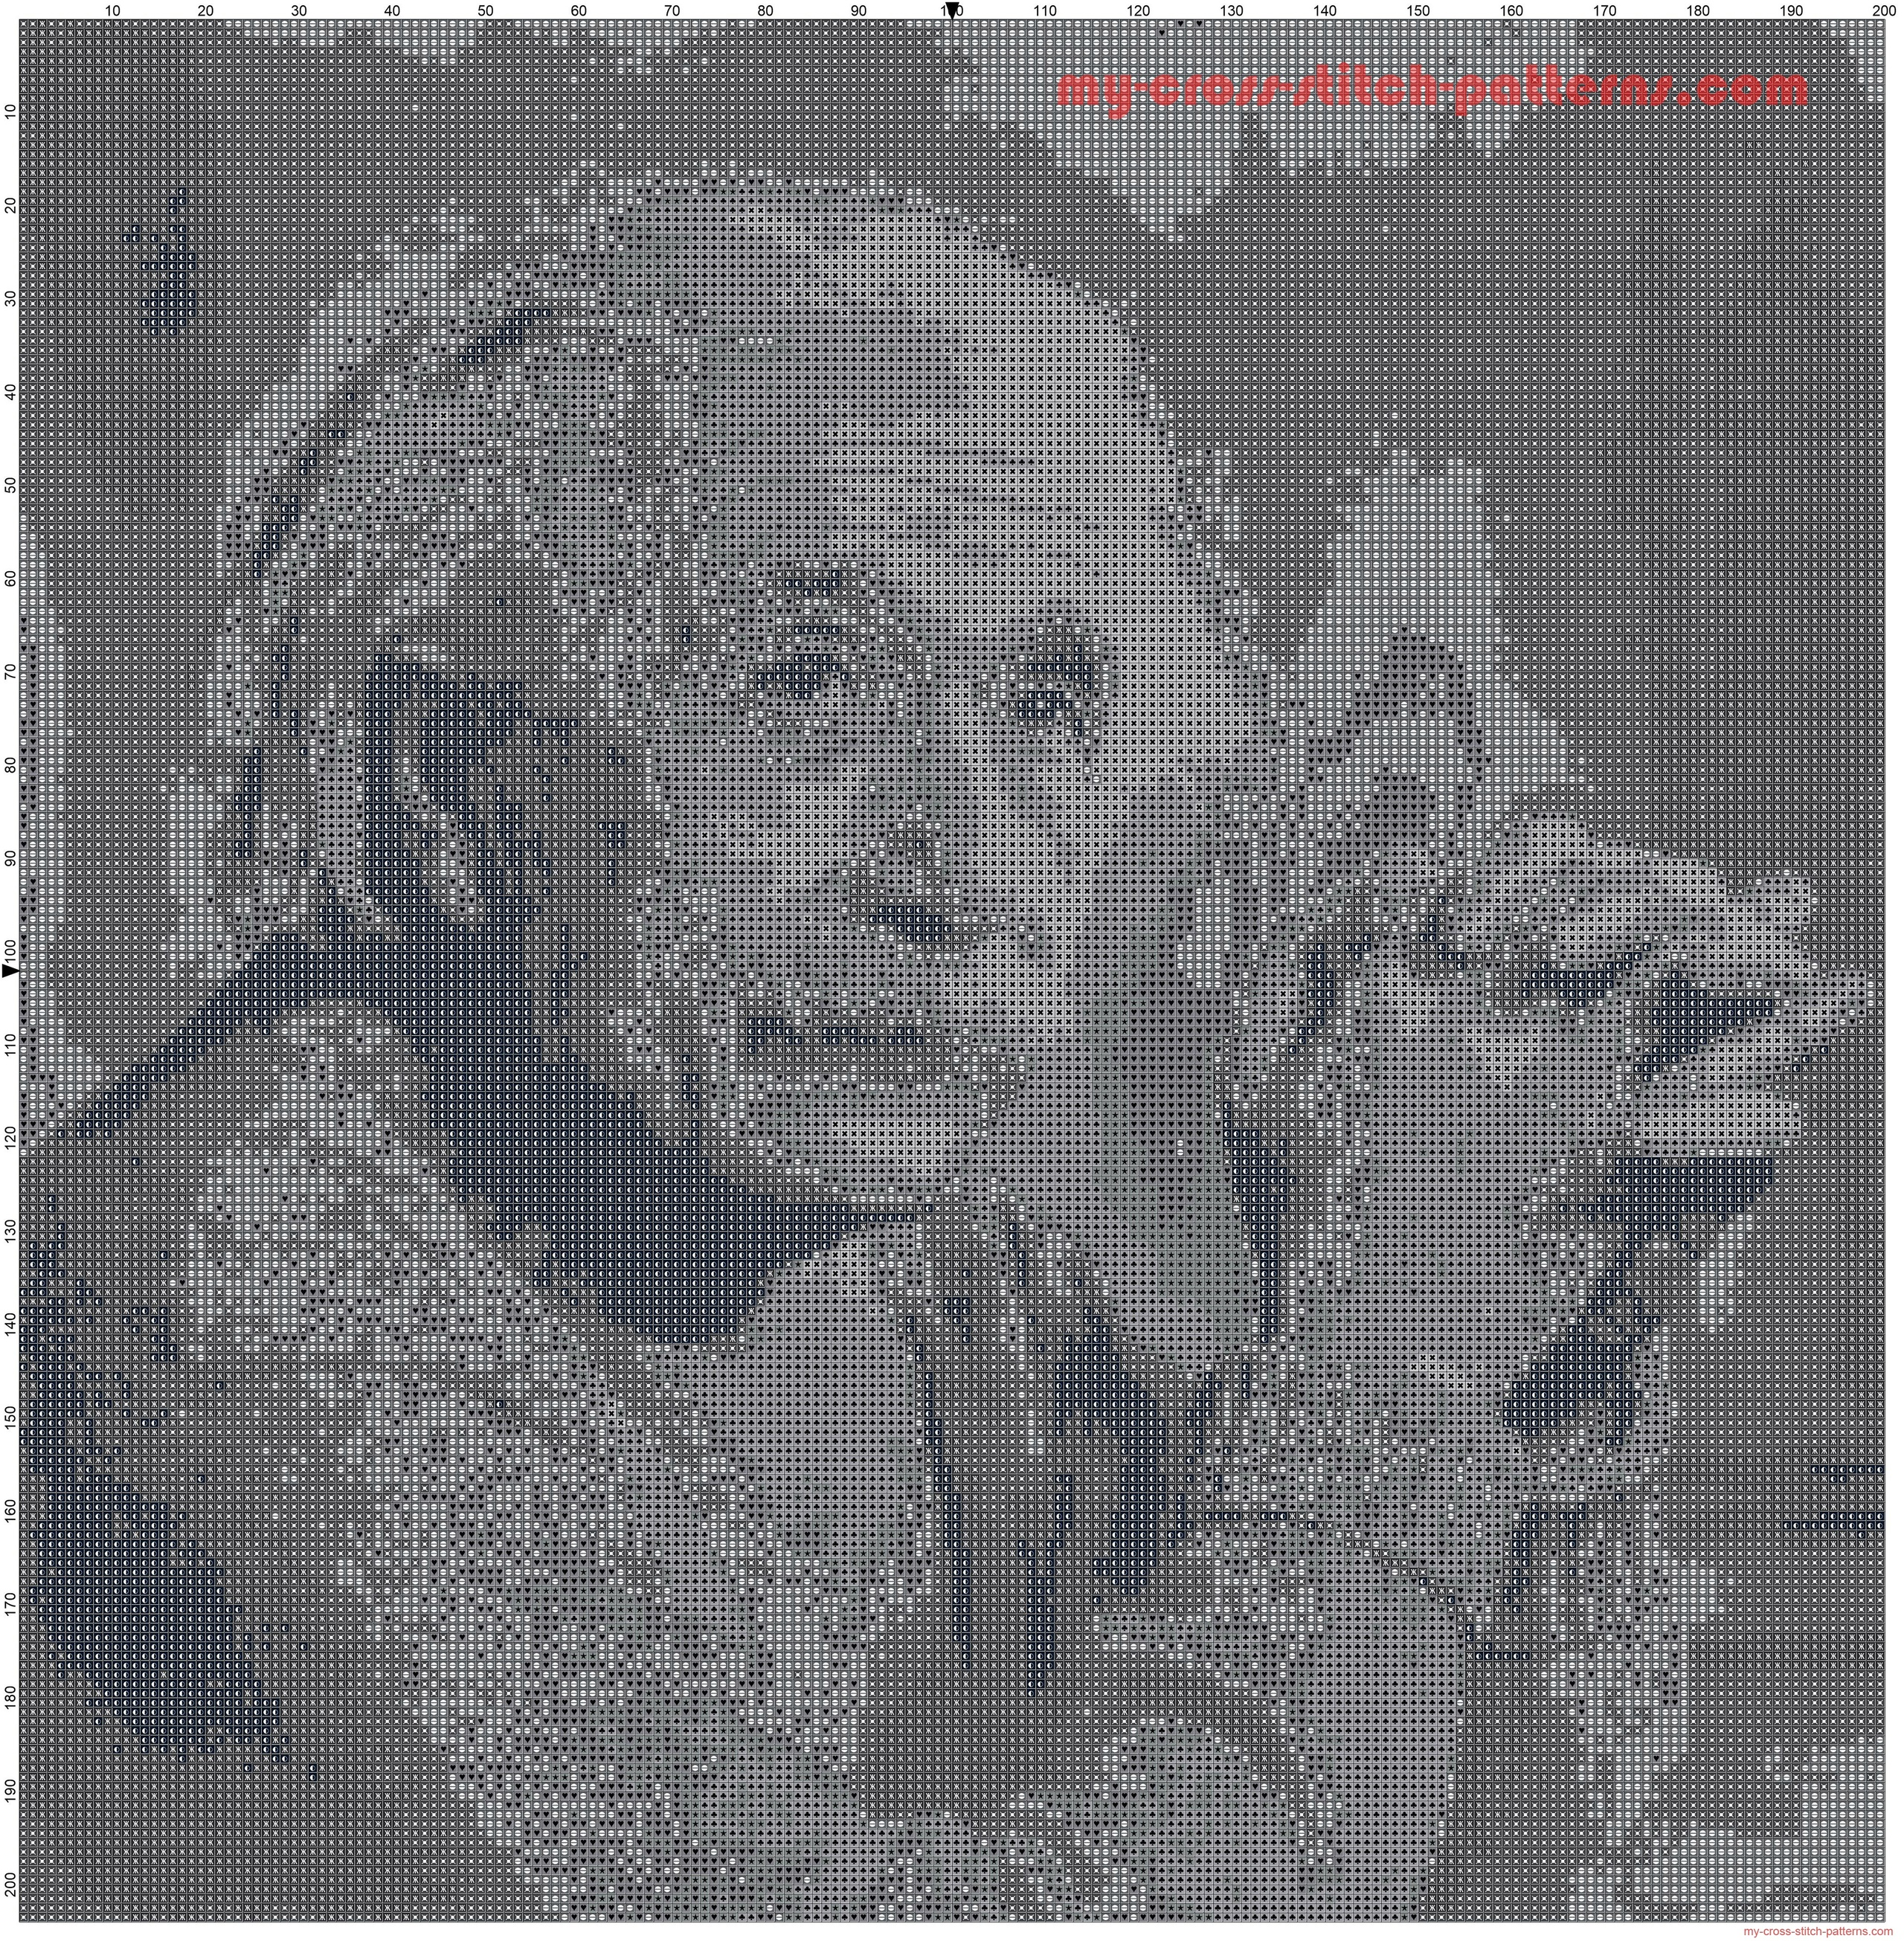 albert_einstein_cross_stitch_pattern_black_and_white_pattern